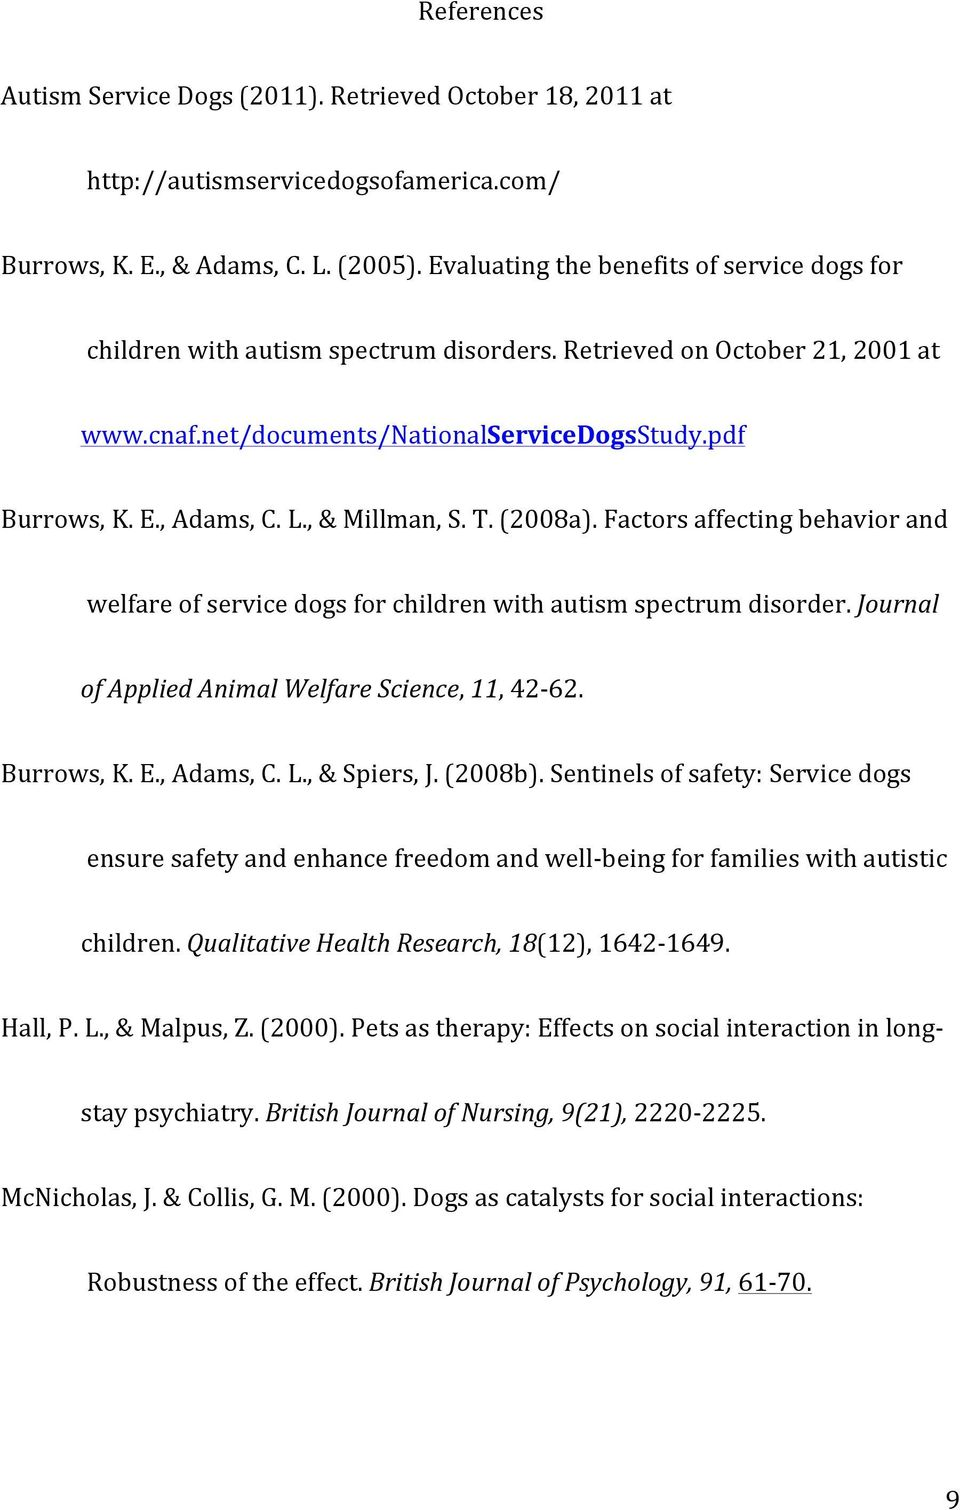 , & Millman, S. T. (2008a). Factors affecting behavior and welfare of service dogs for children with autism spectrum disorder. Journal of Applied Animal Welfare Science, 11, 42-62. Burrows, K. E.